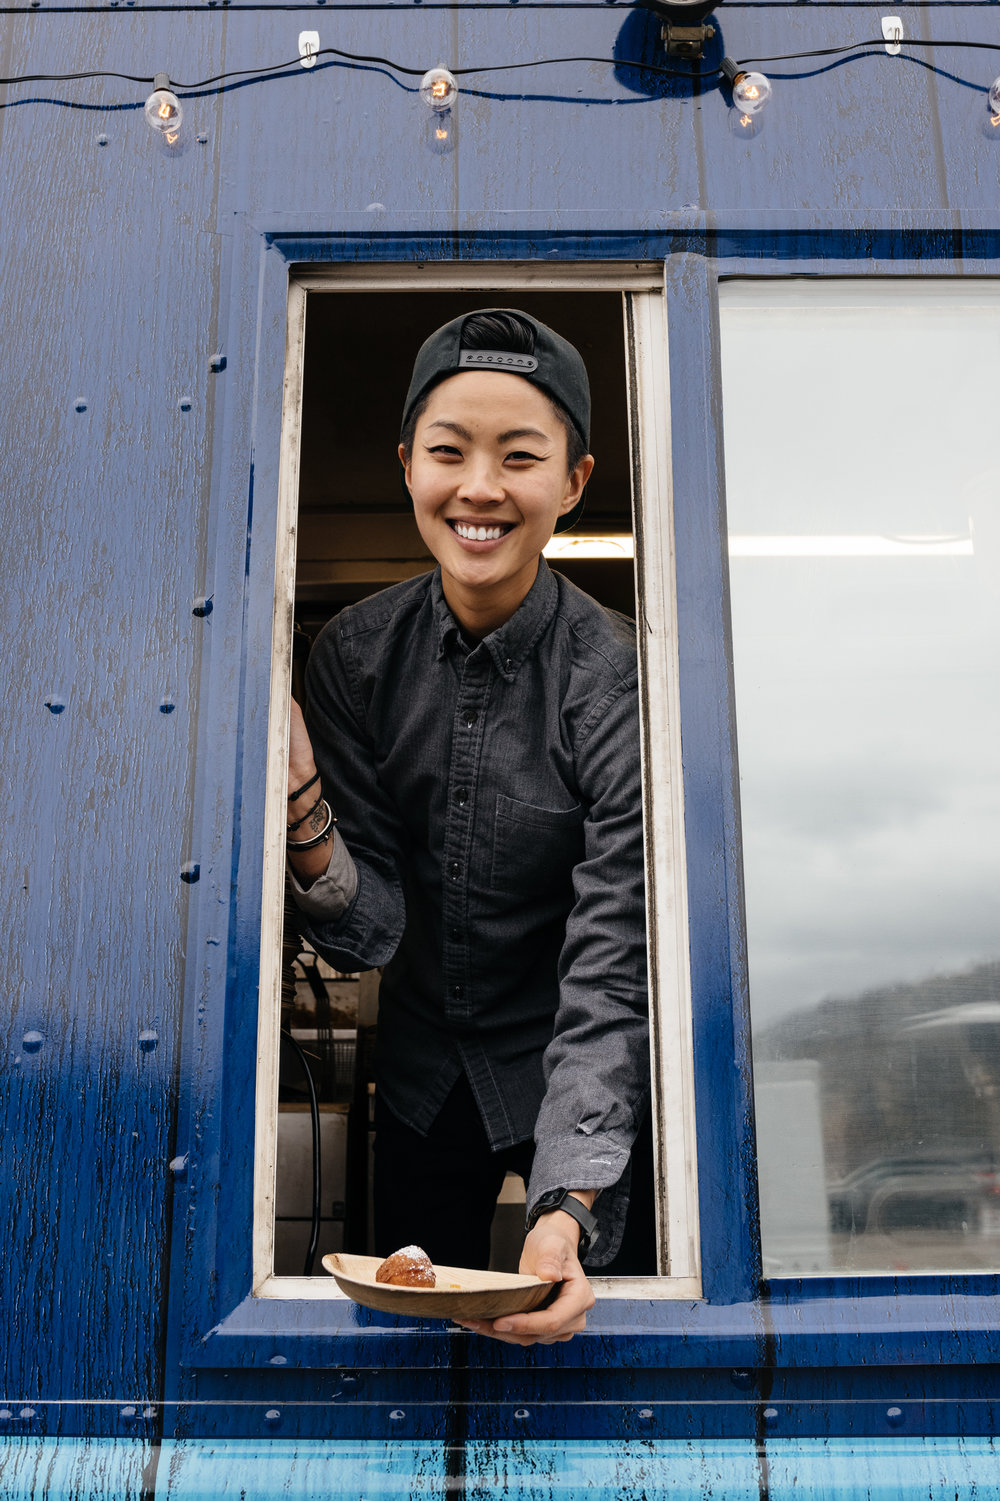 Chef Kristen Kish serving ricotta donuts from inside her food truck at Sundance Film Festival.